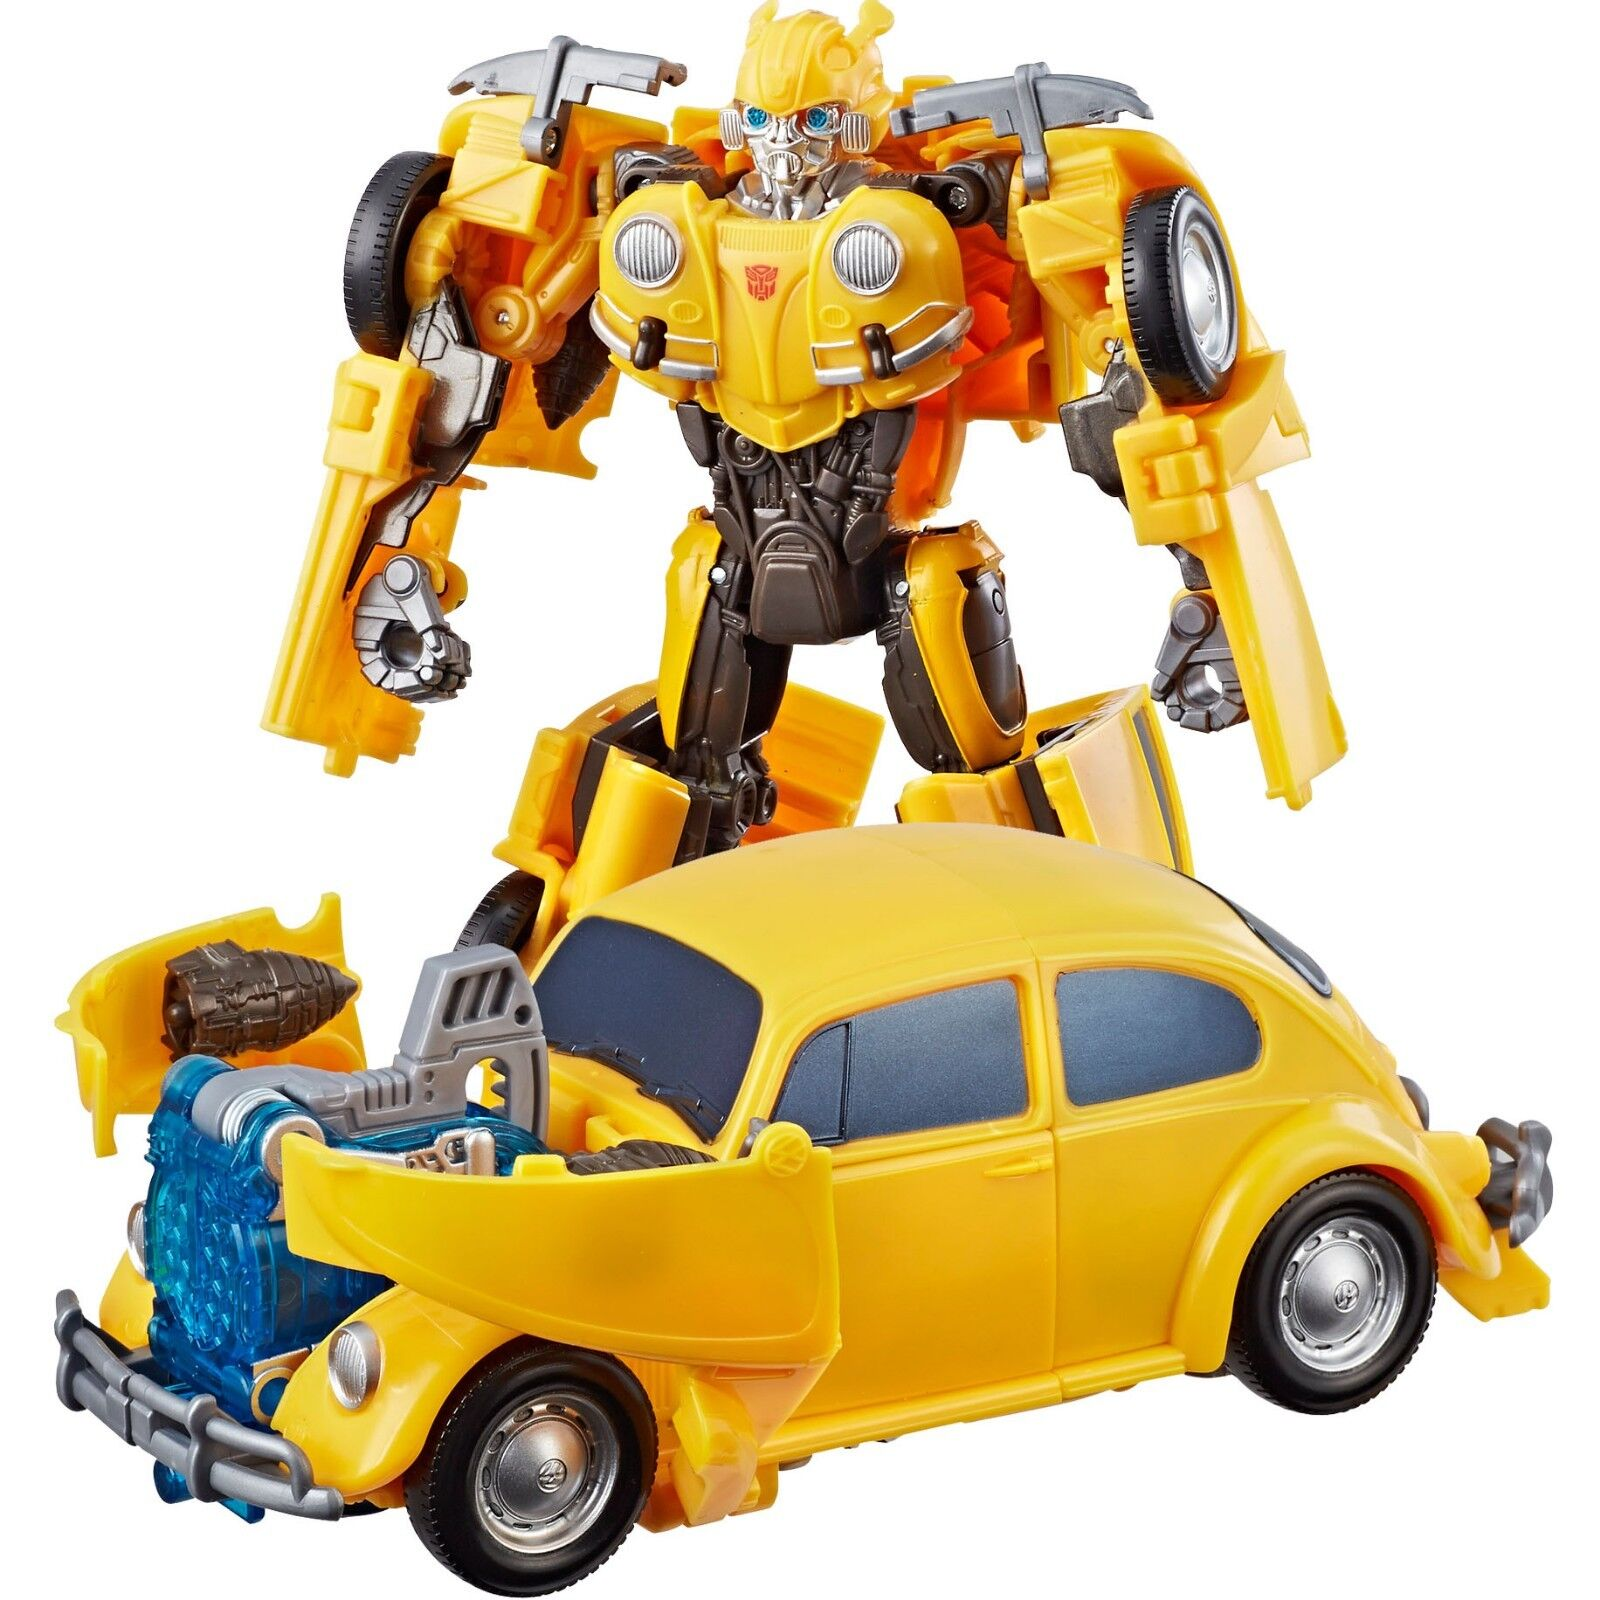 TRANSFORMERS Bumblebee Movie 2018 Energon Igniters Nitro Bumblebee ACTION FIGURE